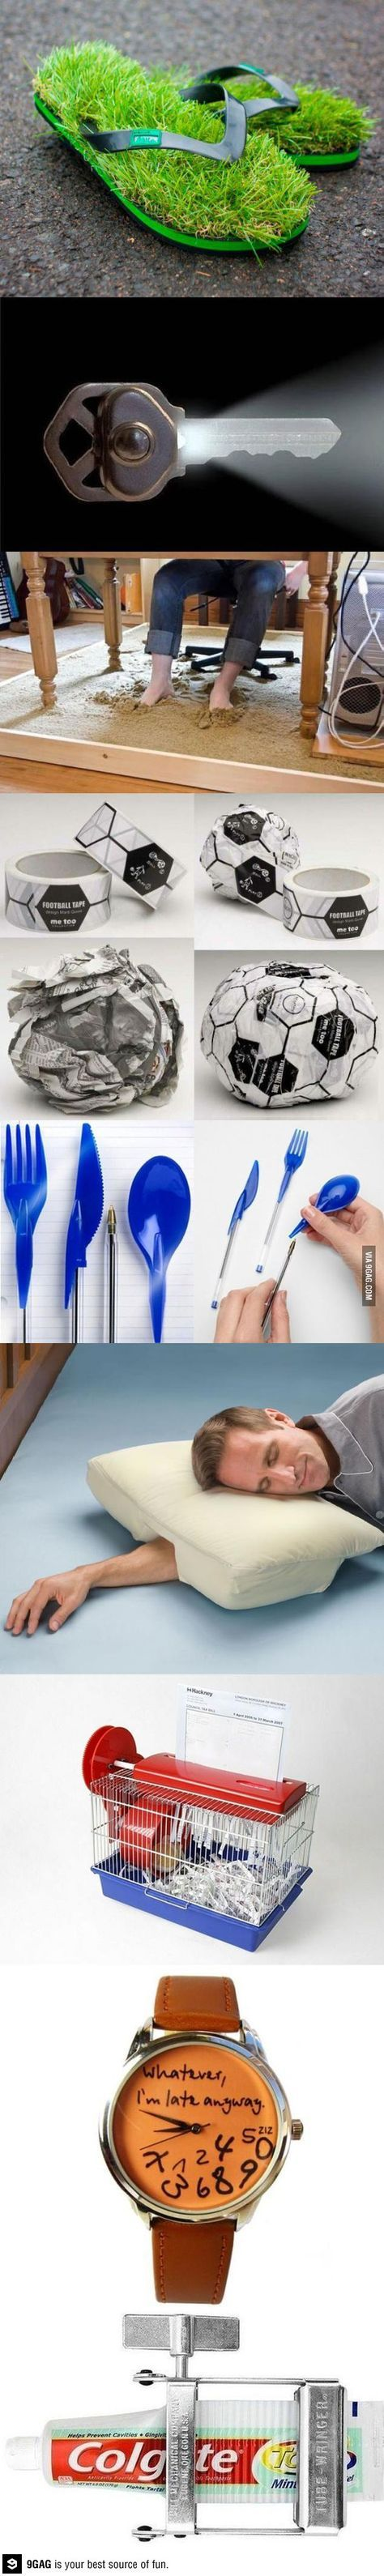 shut up and take my money life hacks cool inventions